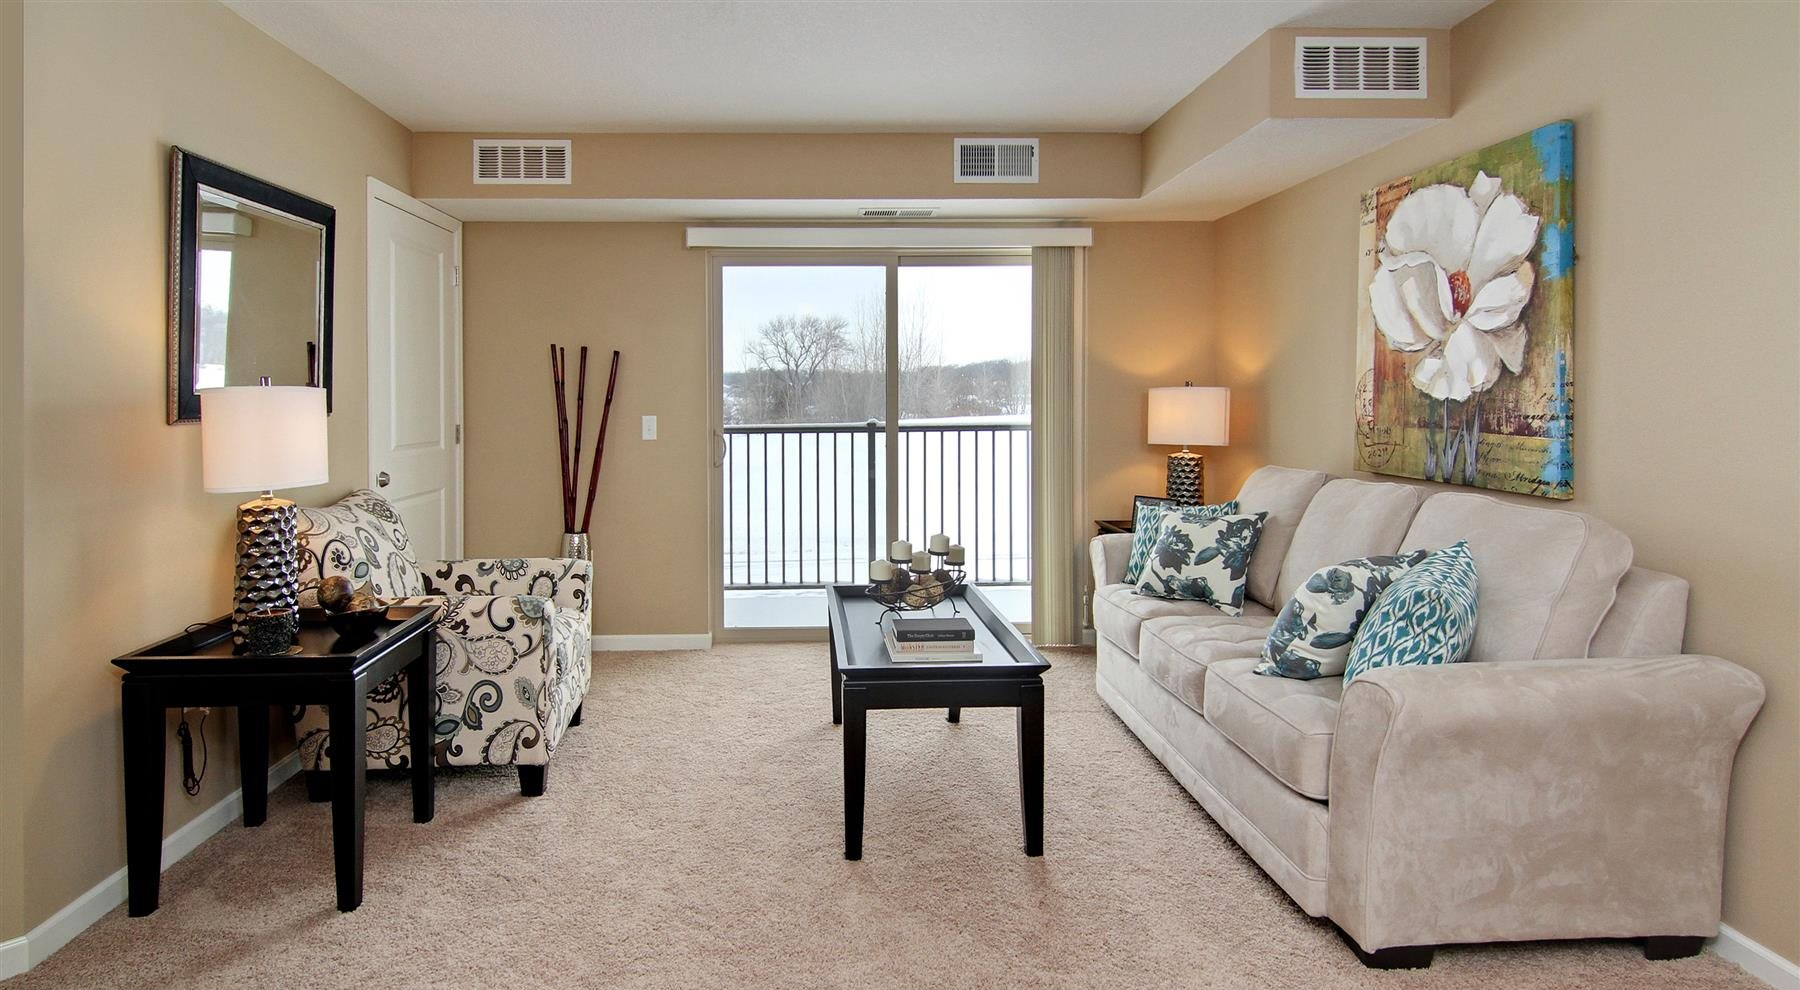 our mn nicollet avenue sectional s photogallery is located housing elements accepts in zest hills elementsoflindenhills minneapolis leasing this linden of vouchers at office section affordable apartments community